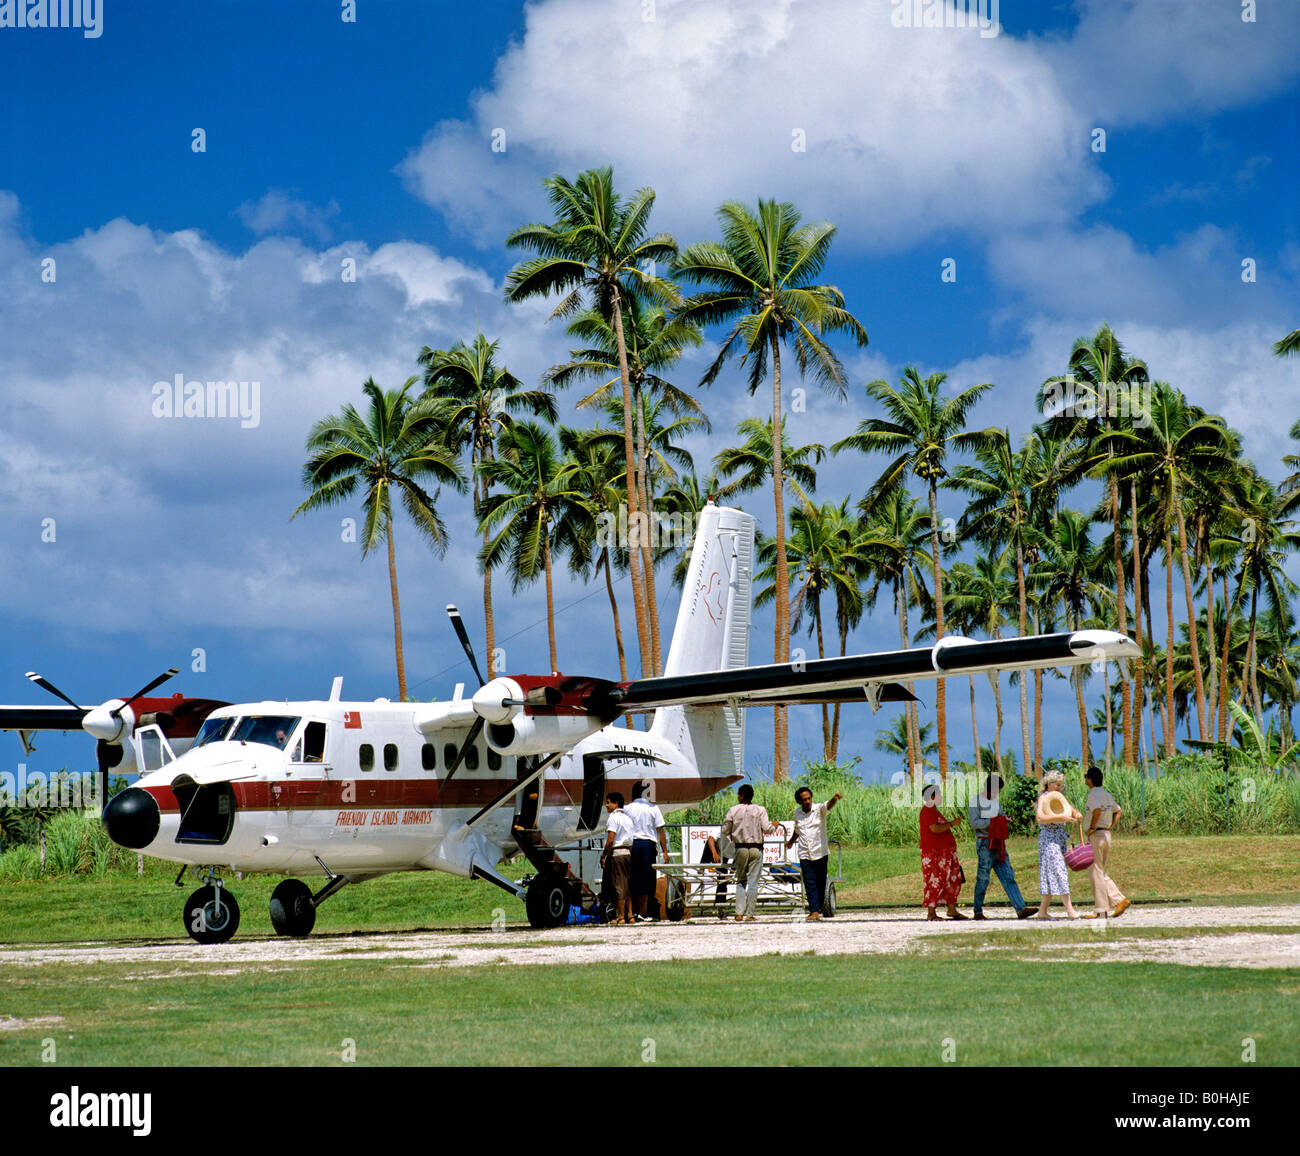 Airport, Friendly Islands Airways, palm trees, Tonga, South Pacific, Oceania - Stock Image